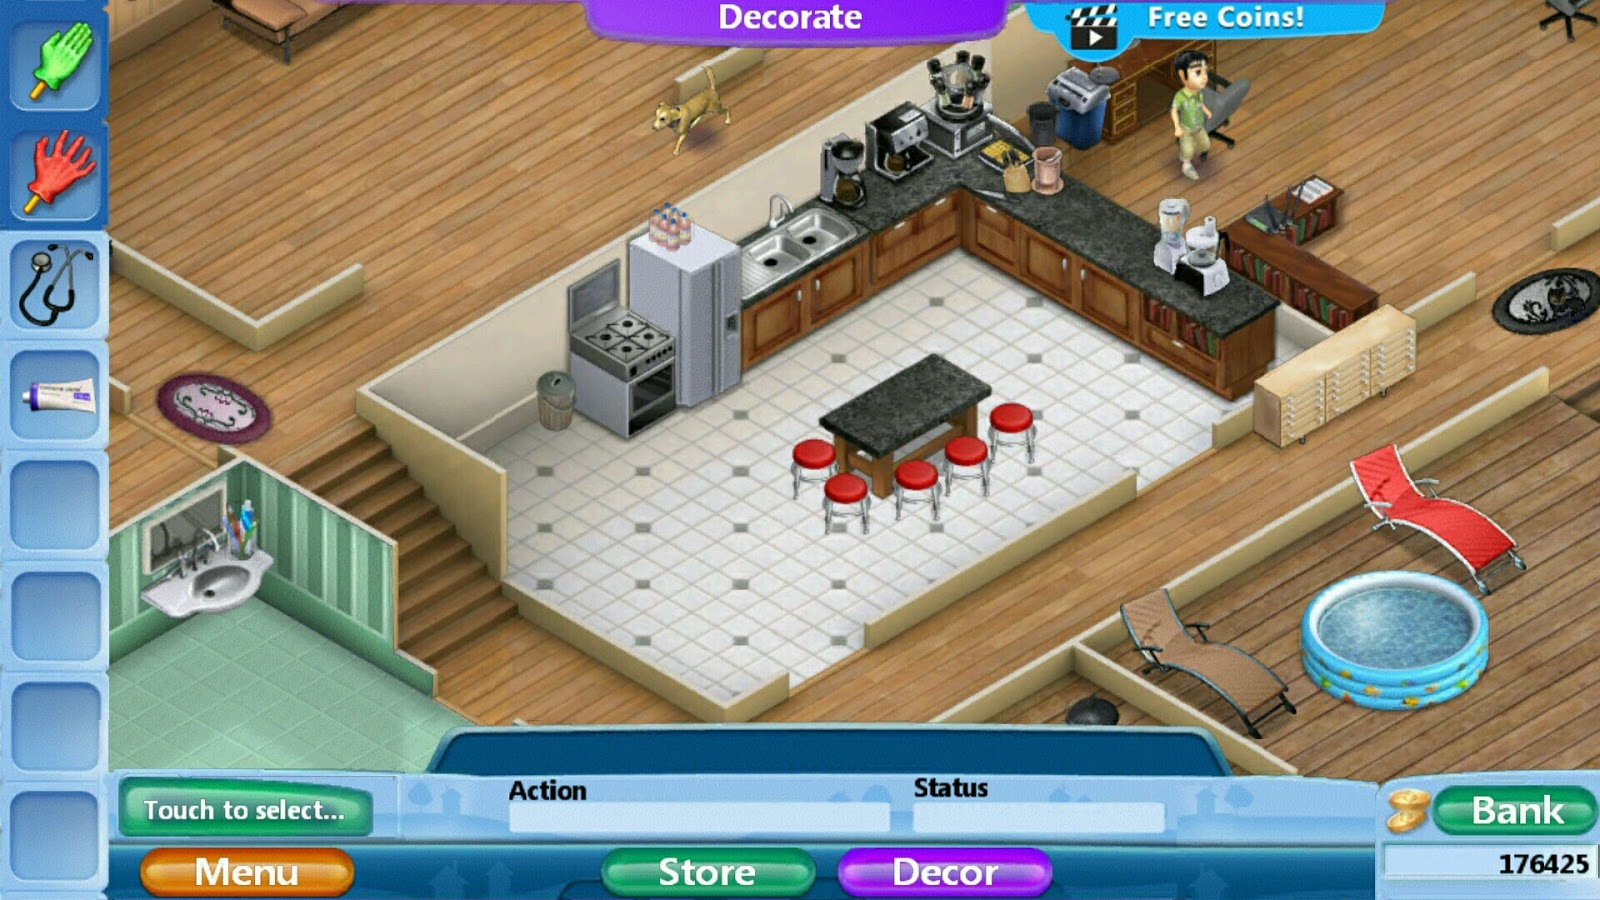 kitchen remodel simulator cabinet refacing los angeles virtual families 2 home renovation pictures also don t worry about overspending cos you can swap remodeling for free i e once have purchased the in beige it will forever